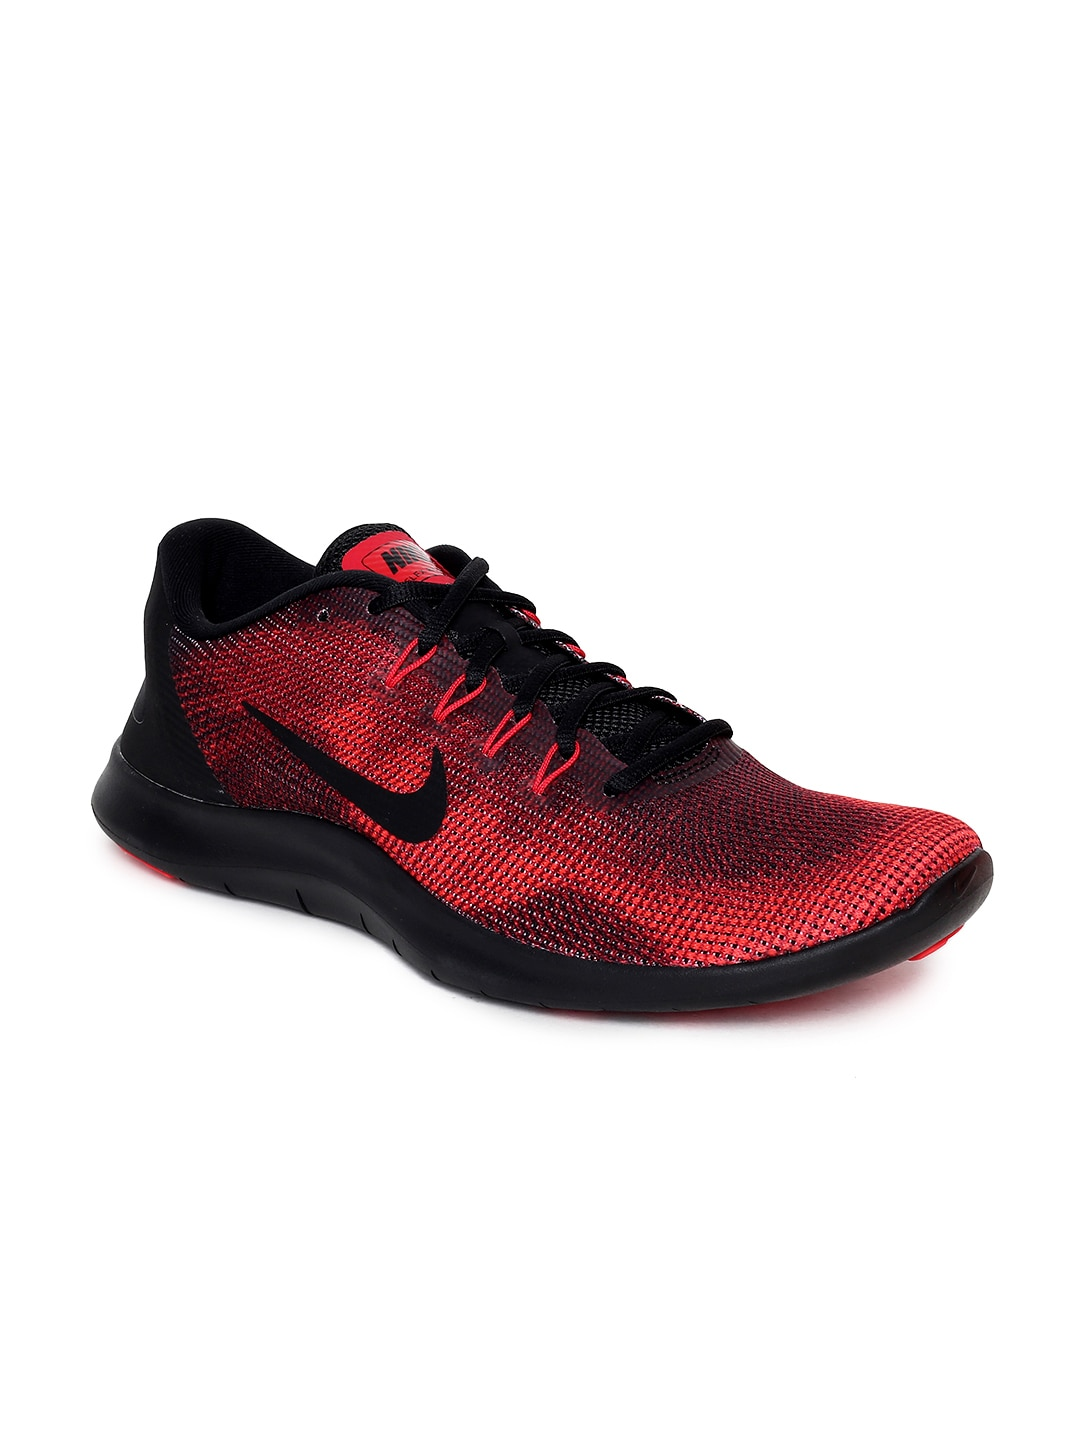 a59b00d3eac0a Nike Trail Sports Shoes - Buy Nike Trail Sports Shoes online in India